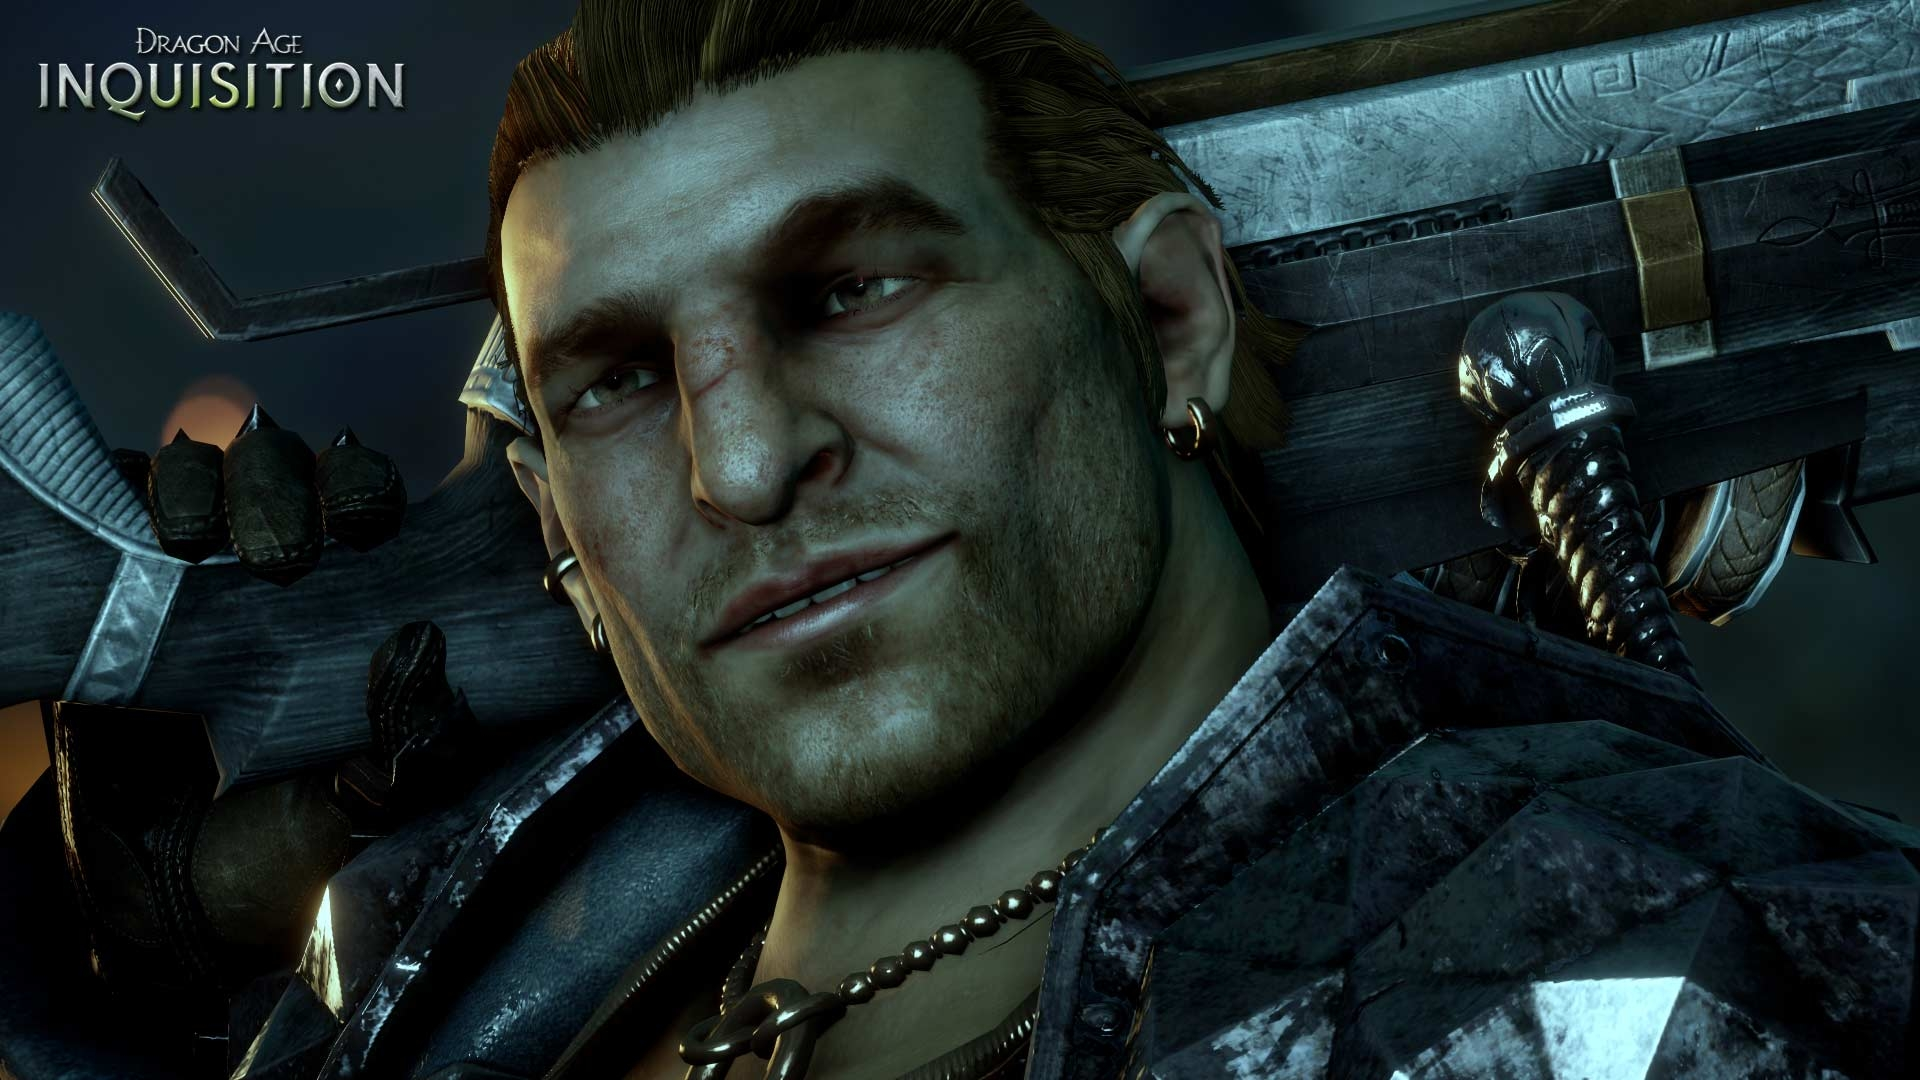 http://download.gamezone.com/uploads/image/data/1169421/varric_dragon_age_inquisition_2.jpeg